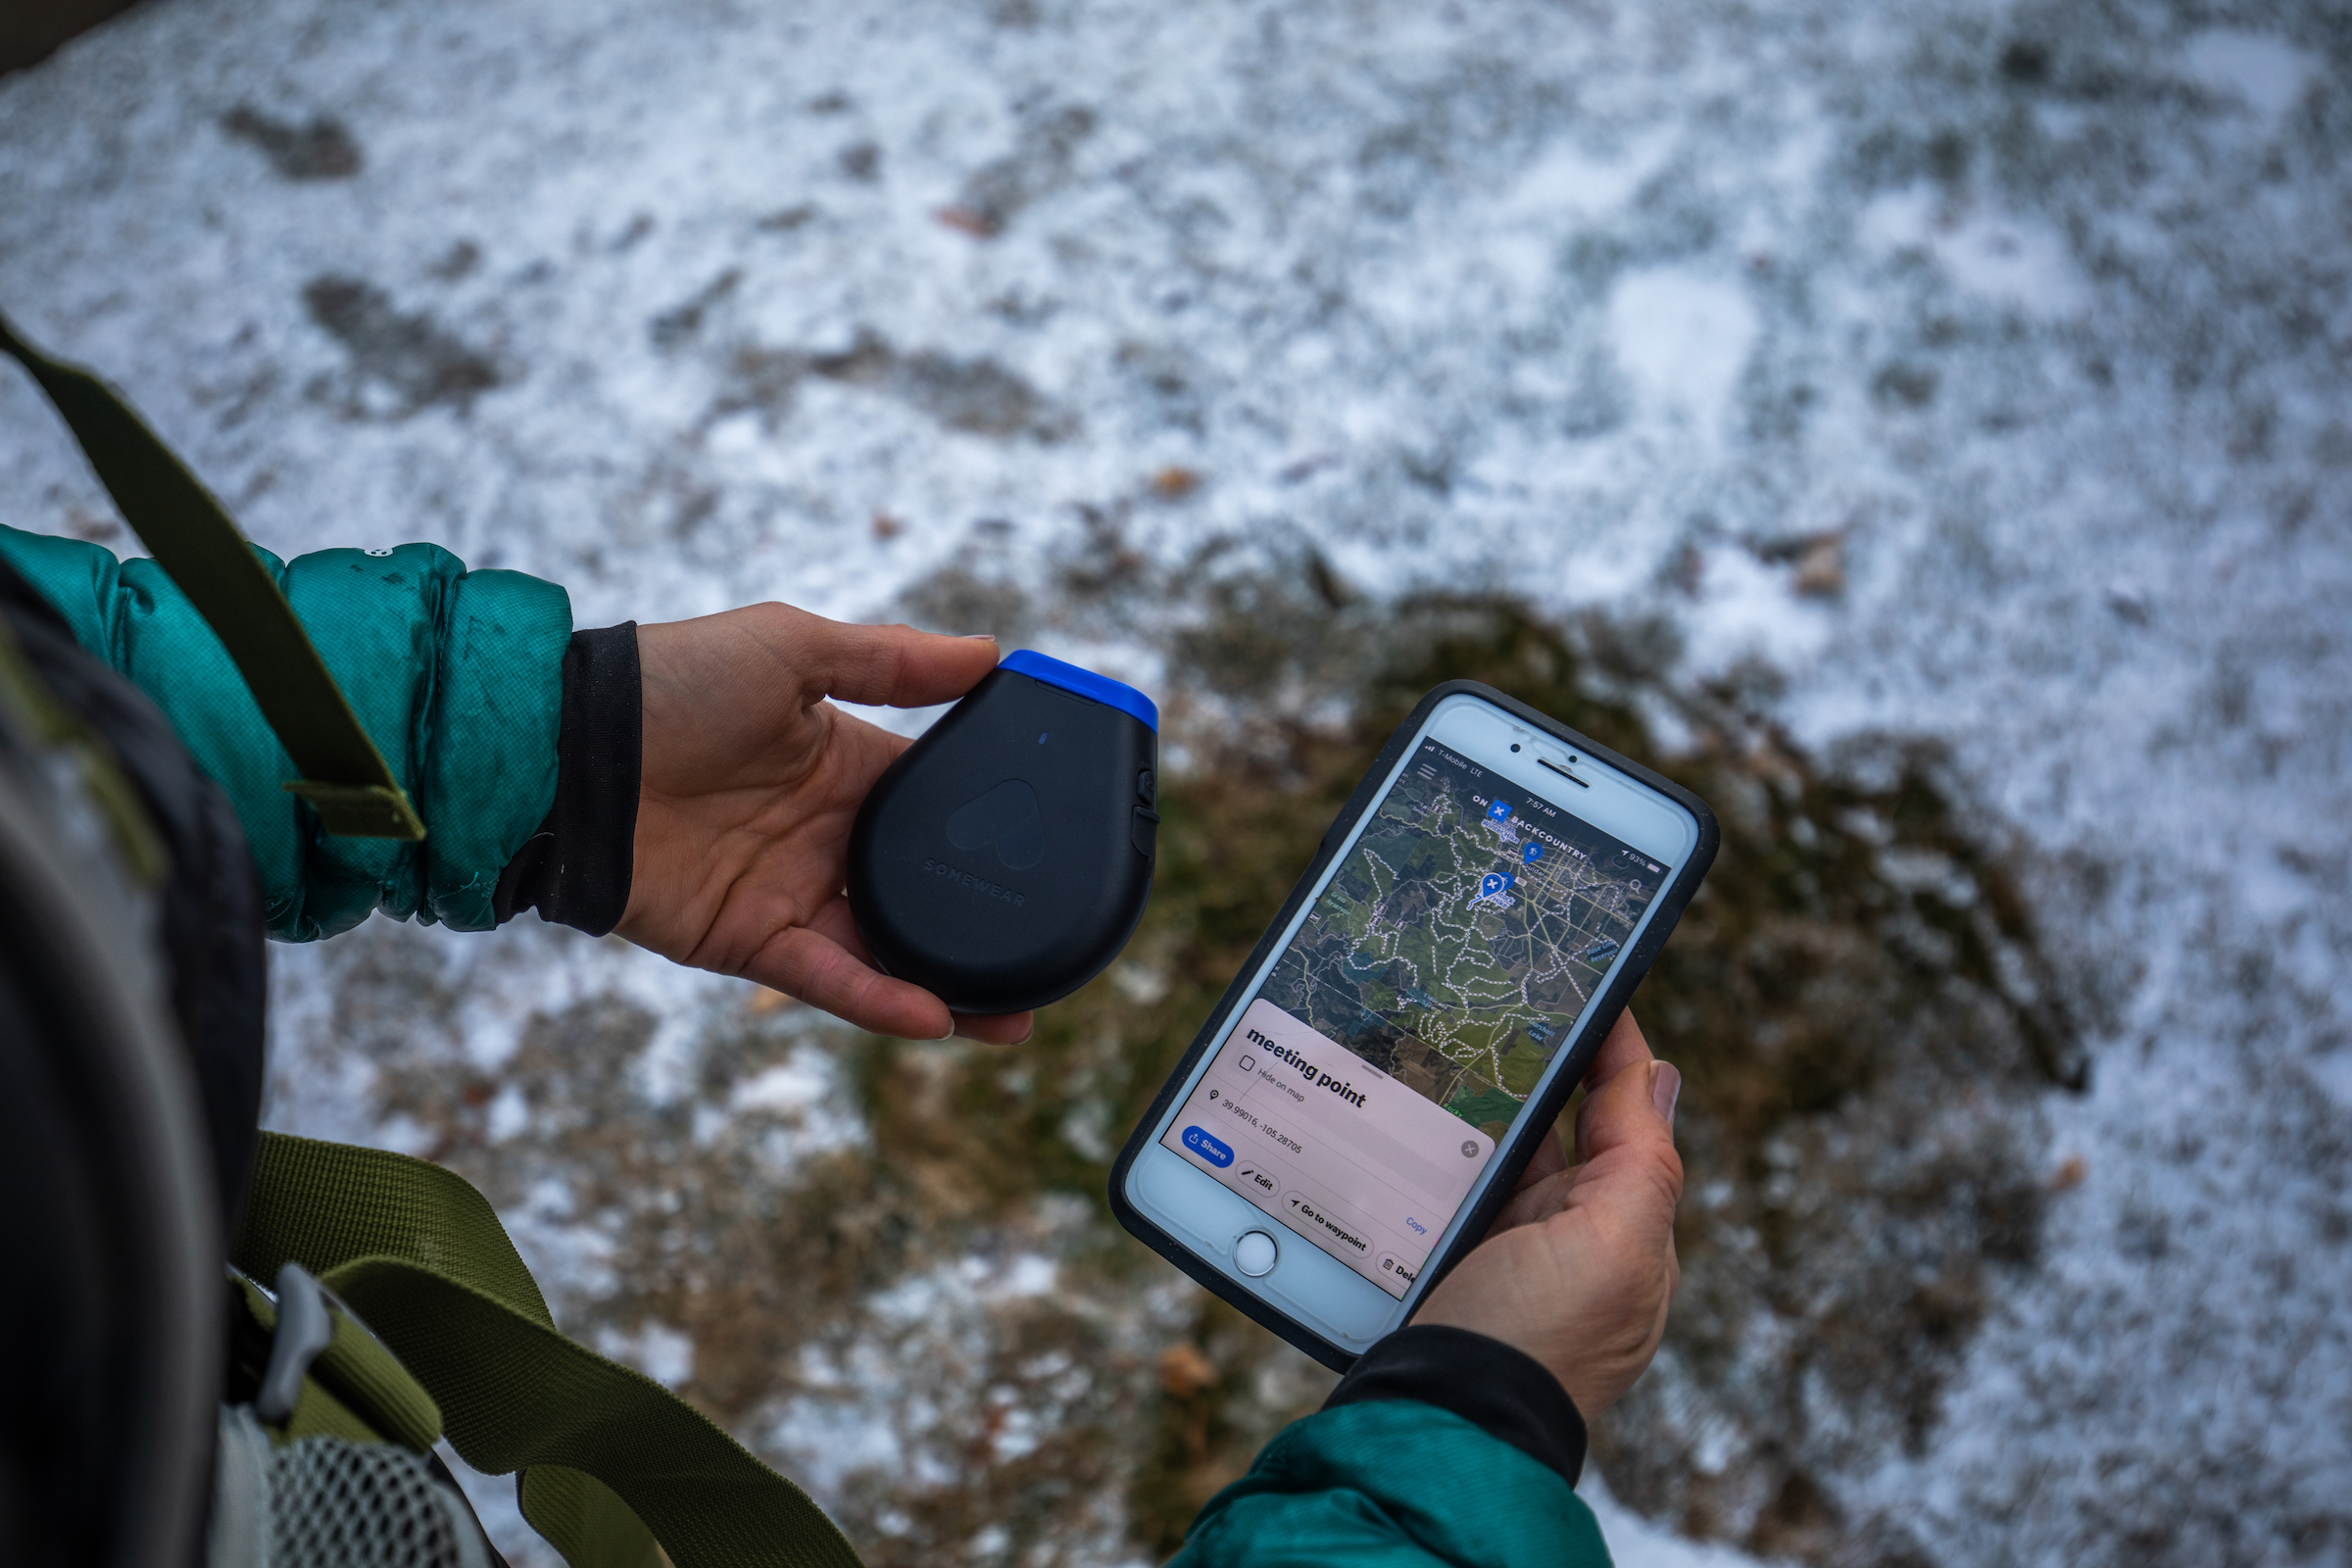 Hikers with a somewear hotspot and an onX mapping app via smartphone